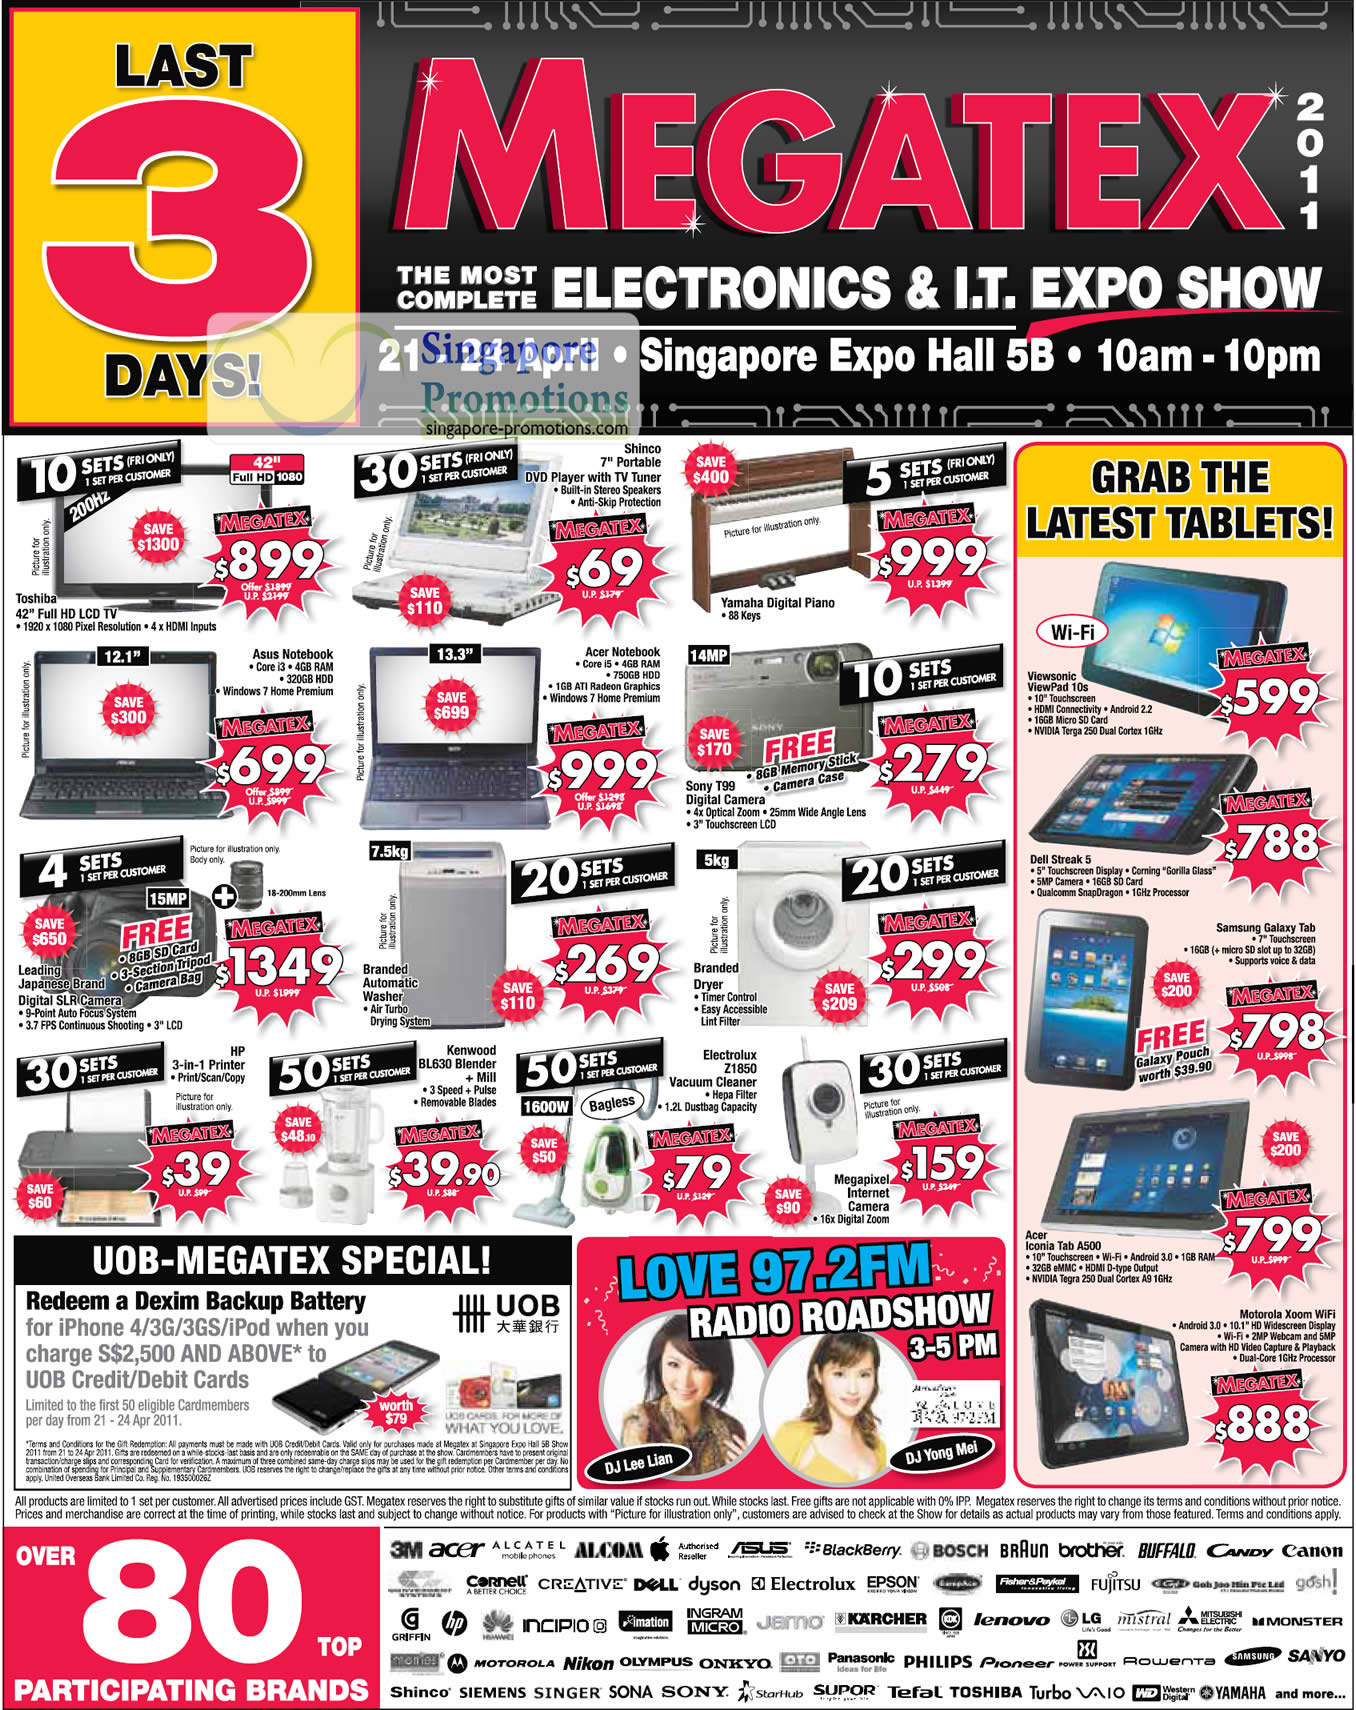 22 Apr Limited Deals, Toshiba TV, ASUS Notebook, Sony DSC-T99, Viewpad 10s, Dell Streak 5, Acer Iconia Tab A500, Samsung Galaxy Tab, DJ Lee Lian, Yong Mei